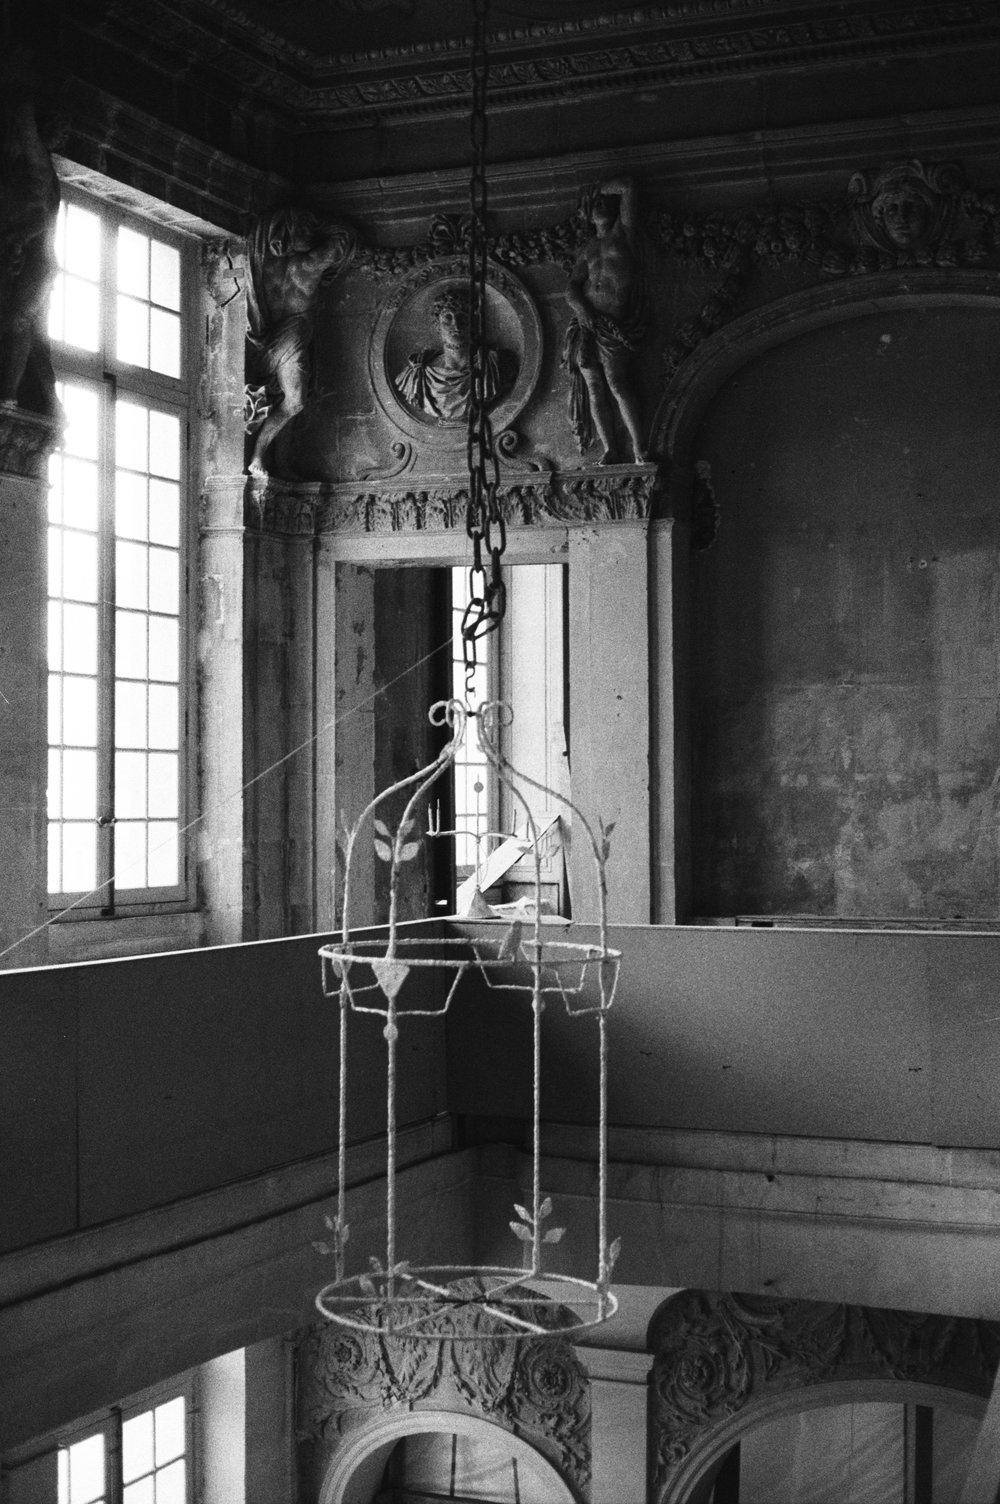 Installation of the scale model of lantern on the staircase at Hôtel Salé, November 1982 Digital reproduction after an original photo negative ©Laurence Berthon-Marceillac/ Musée national Picasso-Paris